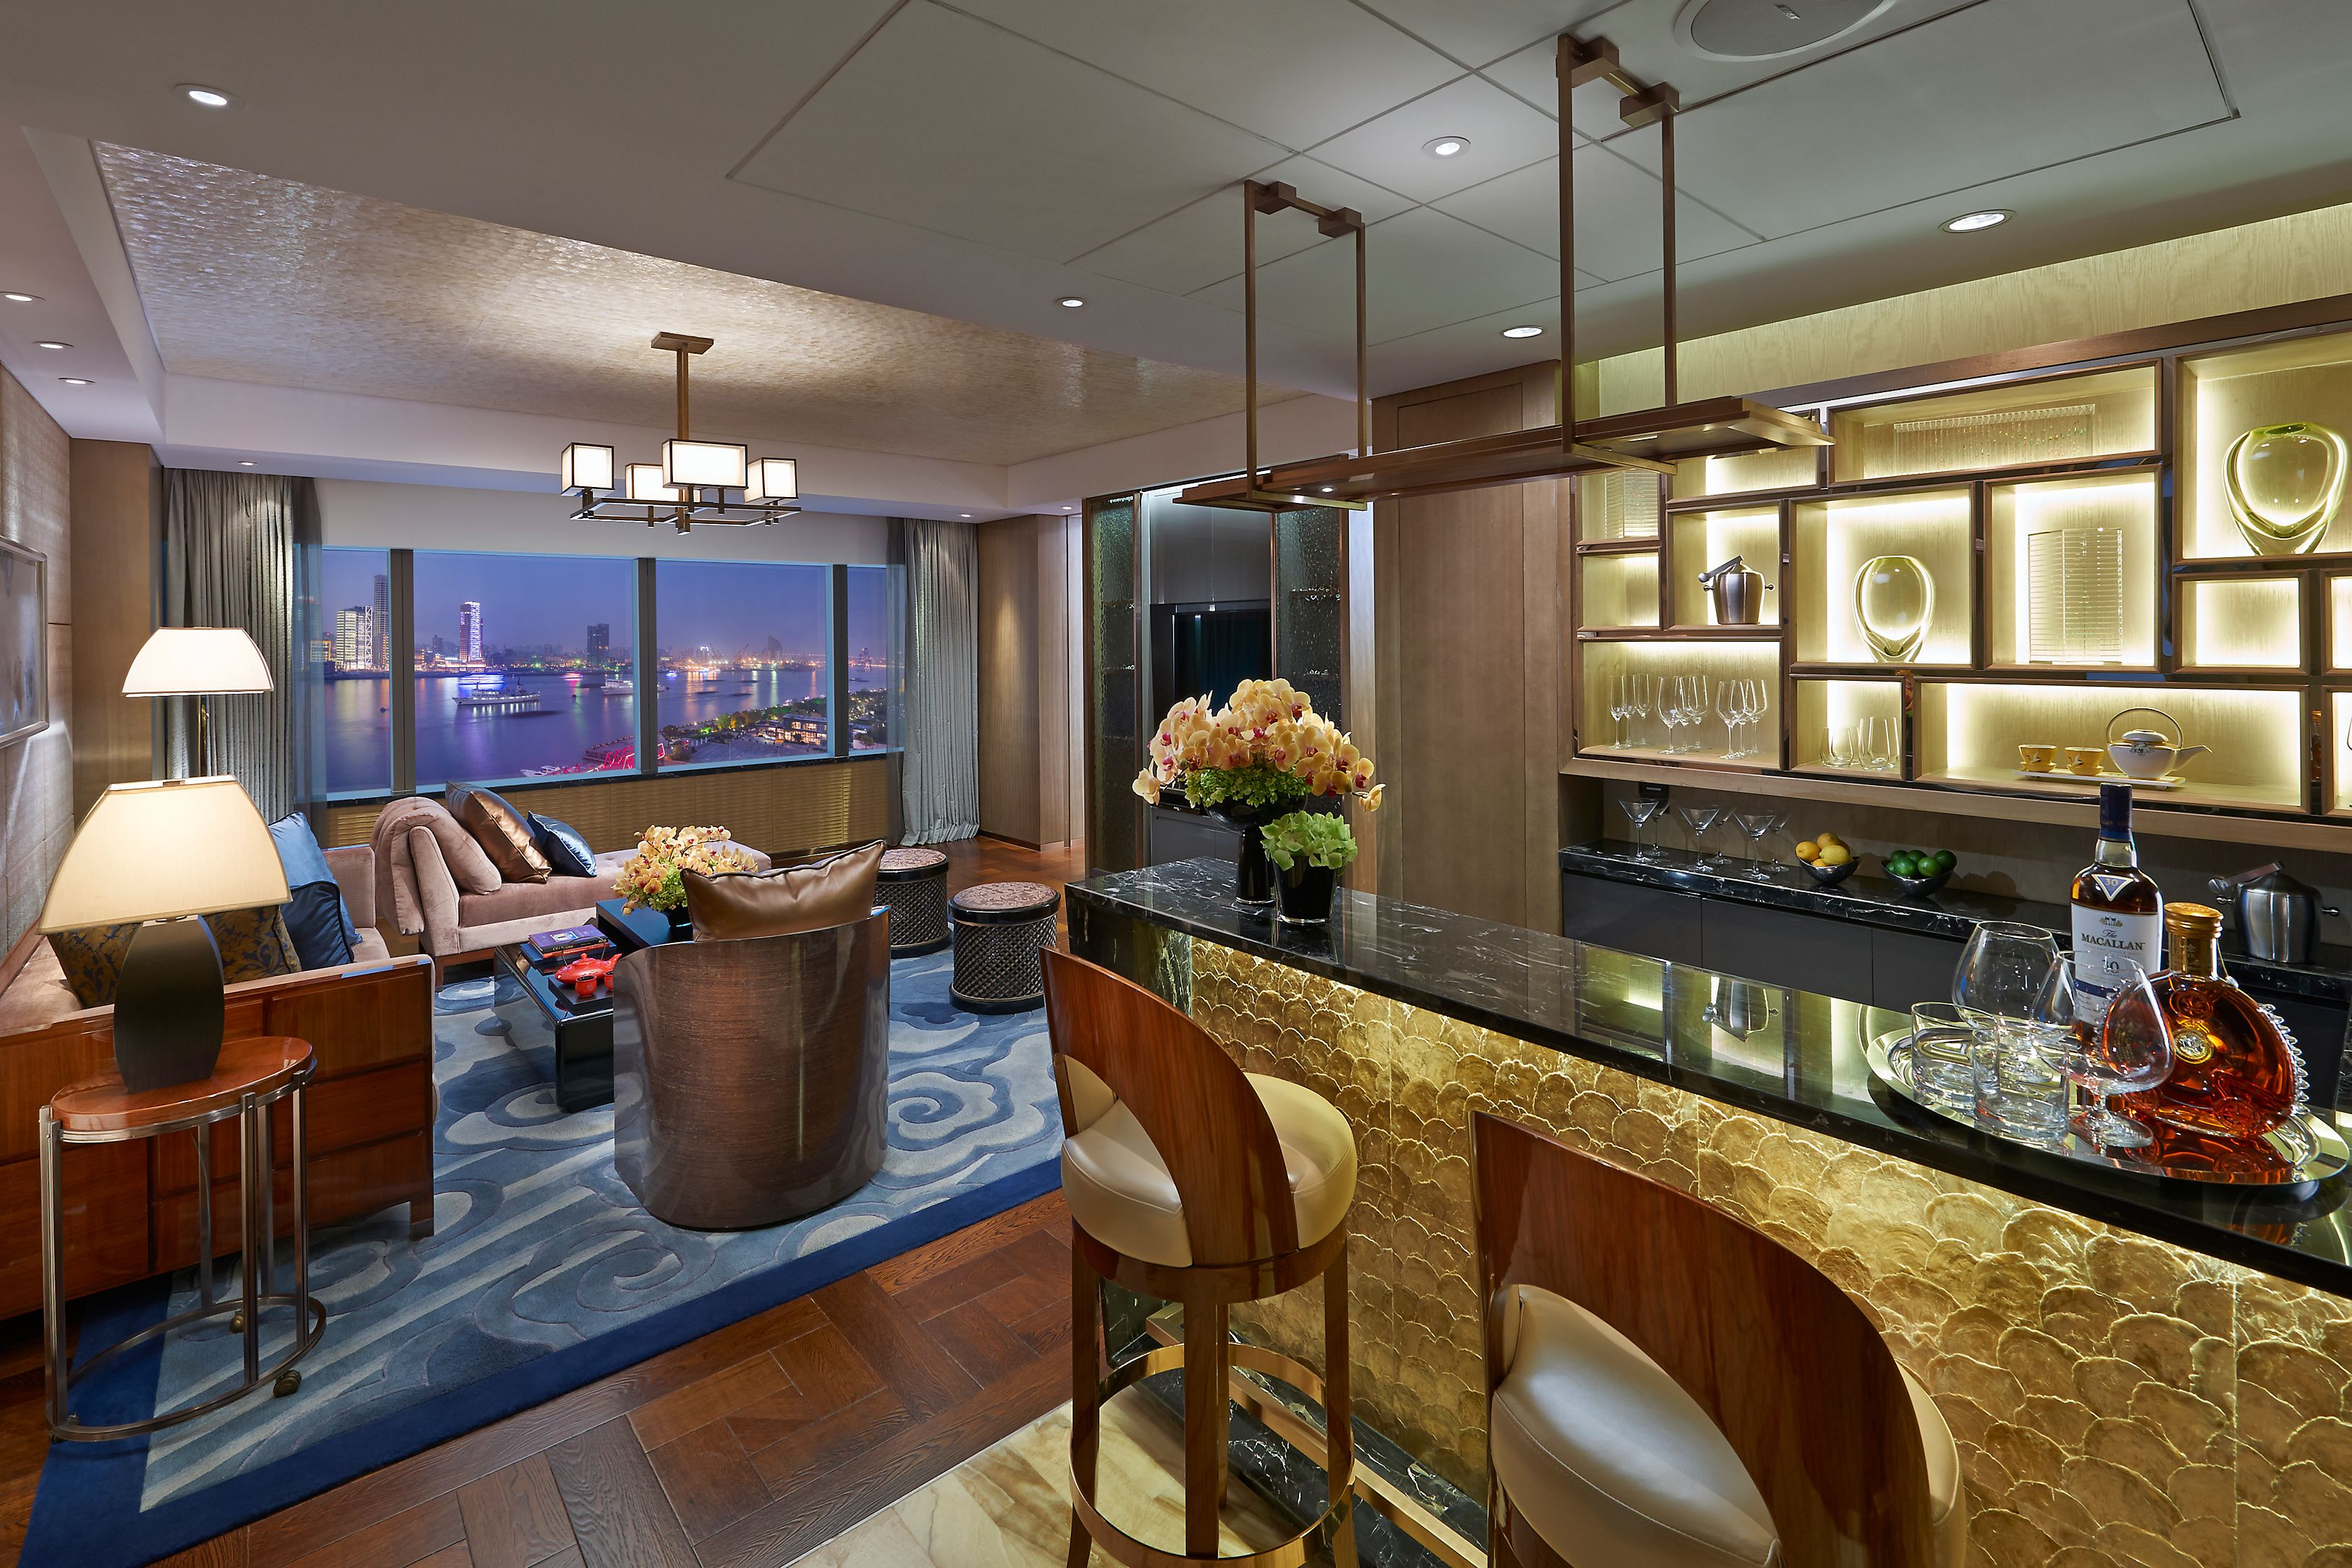 Oriental Suite Bar and Living Room | Hotel Facilities | Pinterest ...